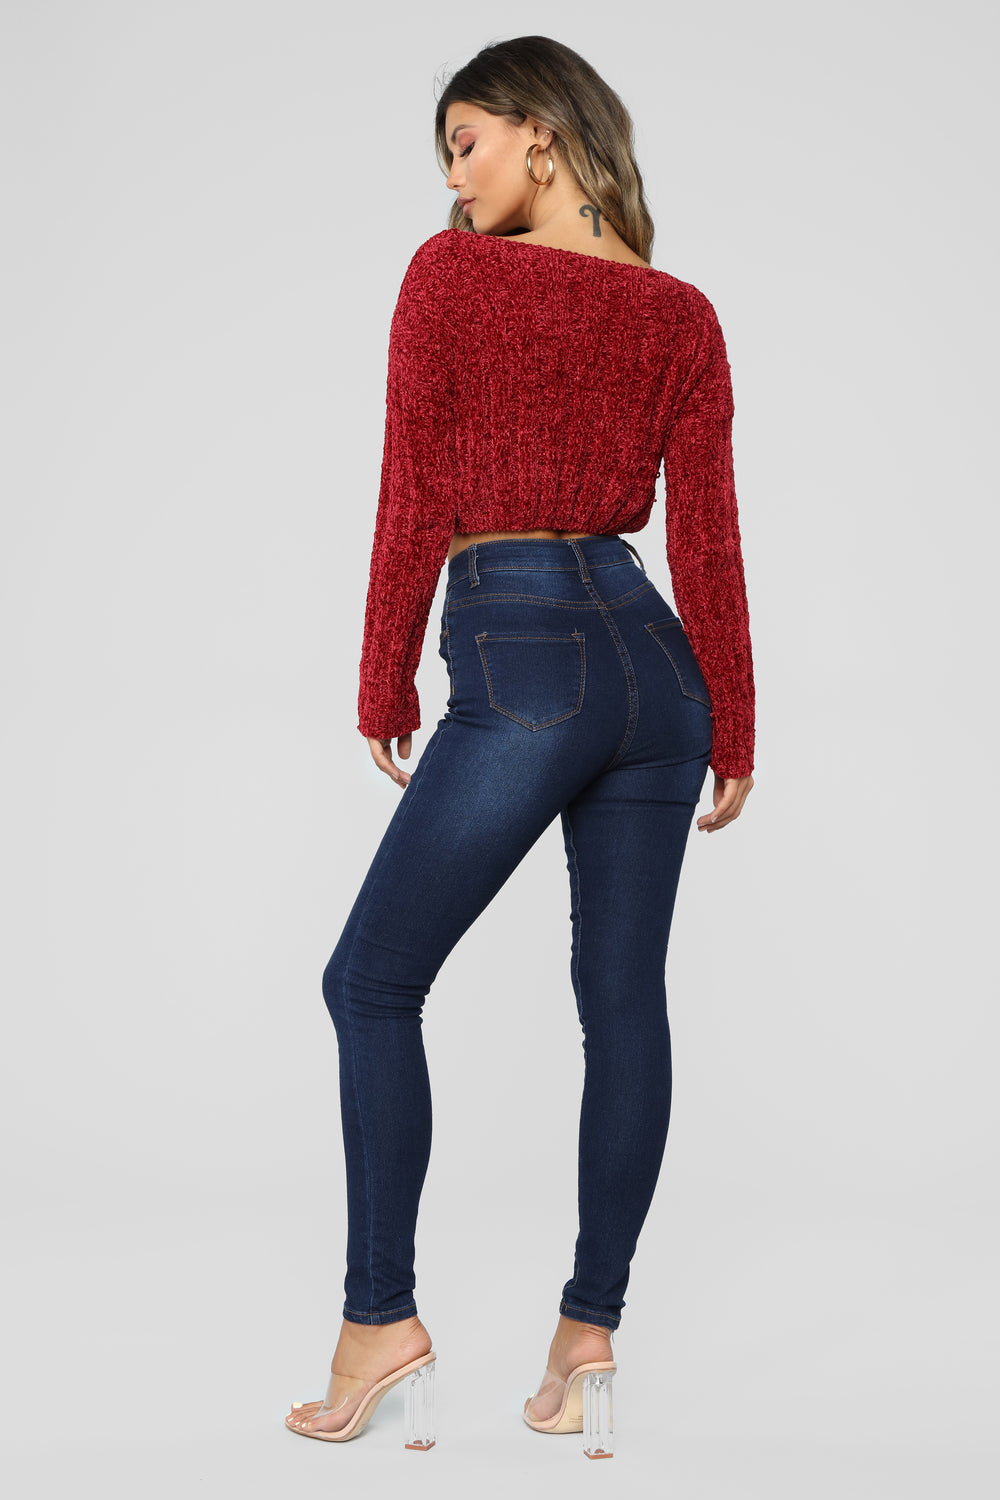 Eva Cropped Sweater - Red